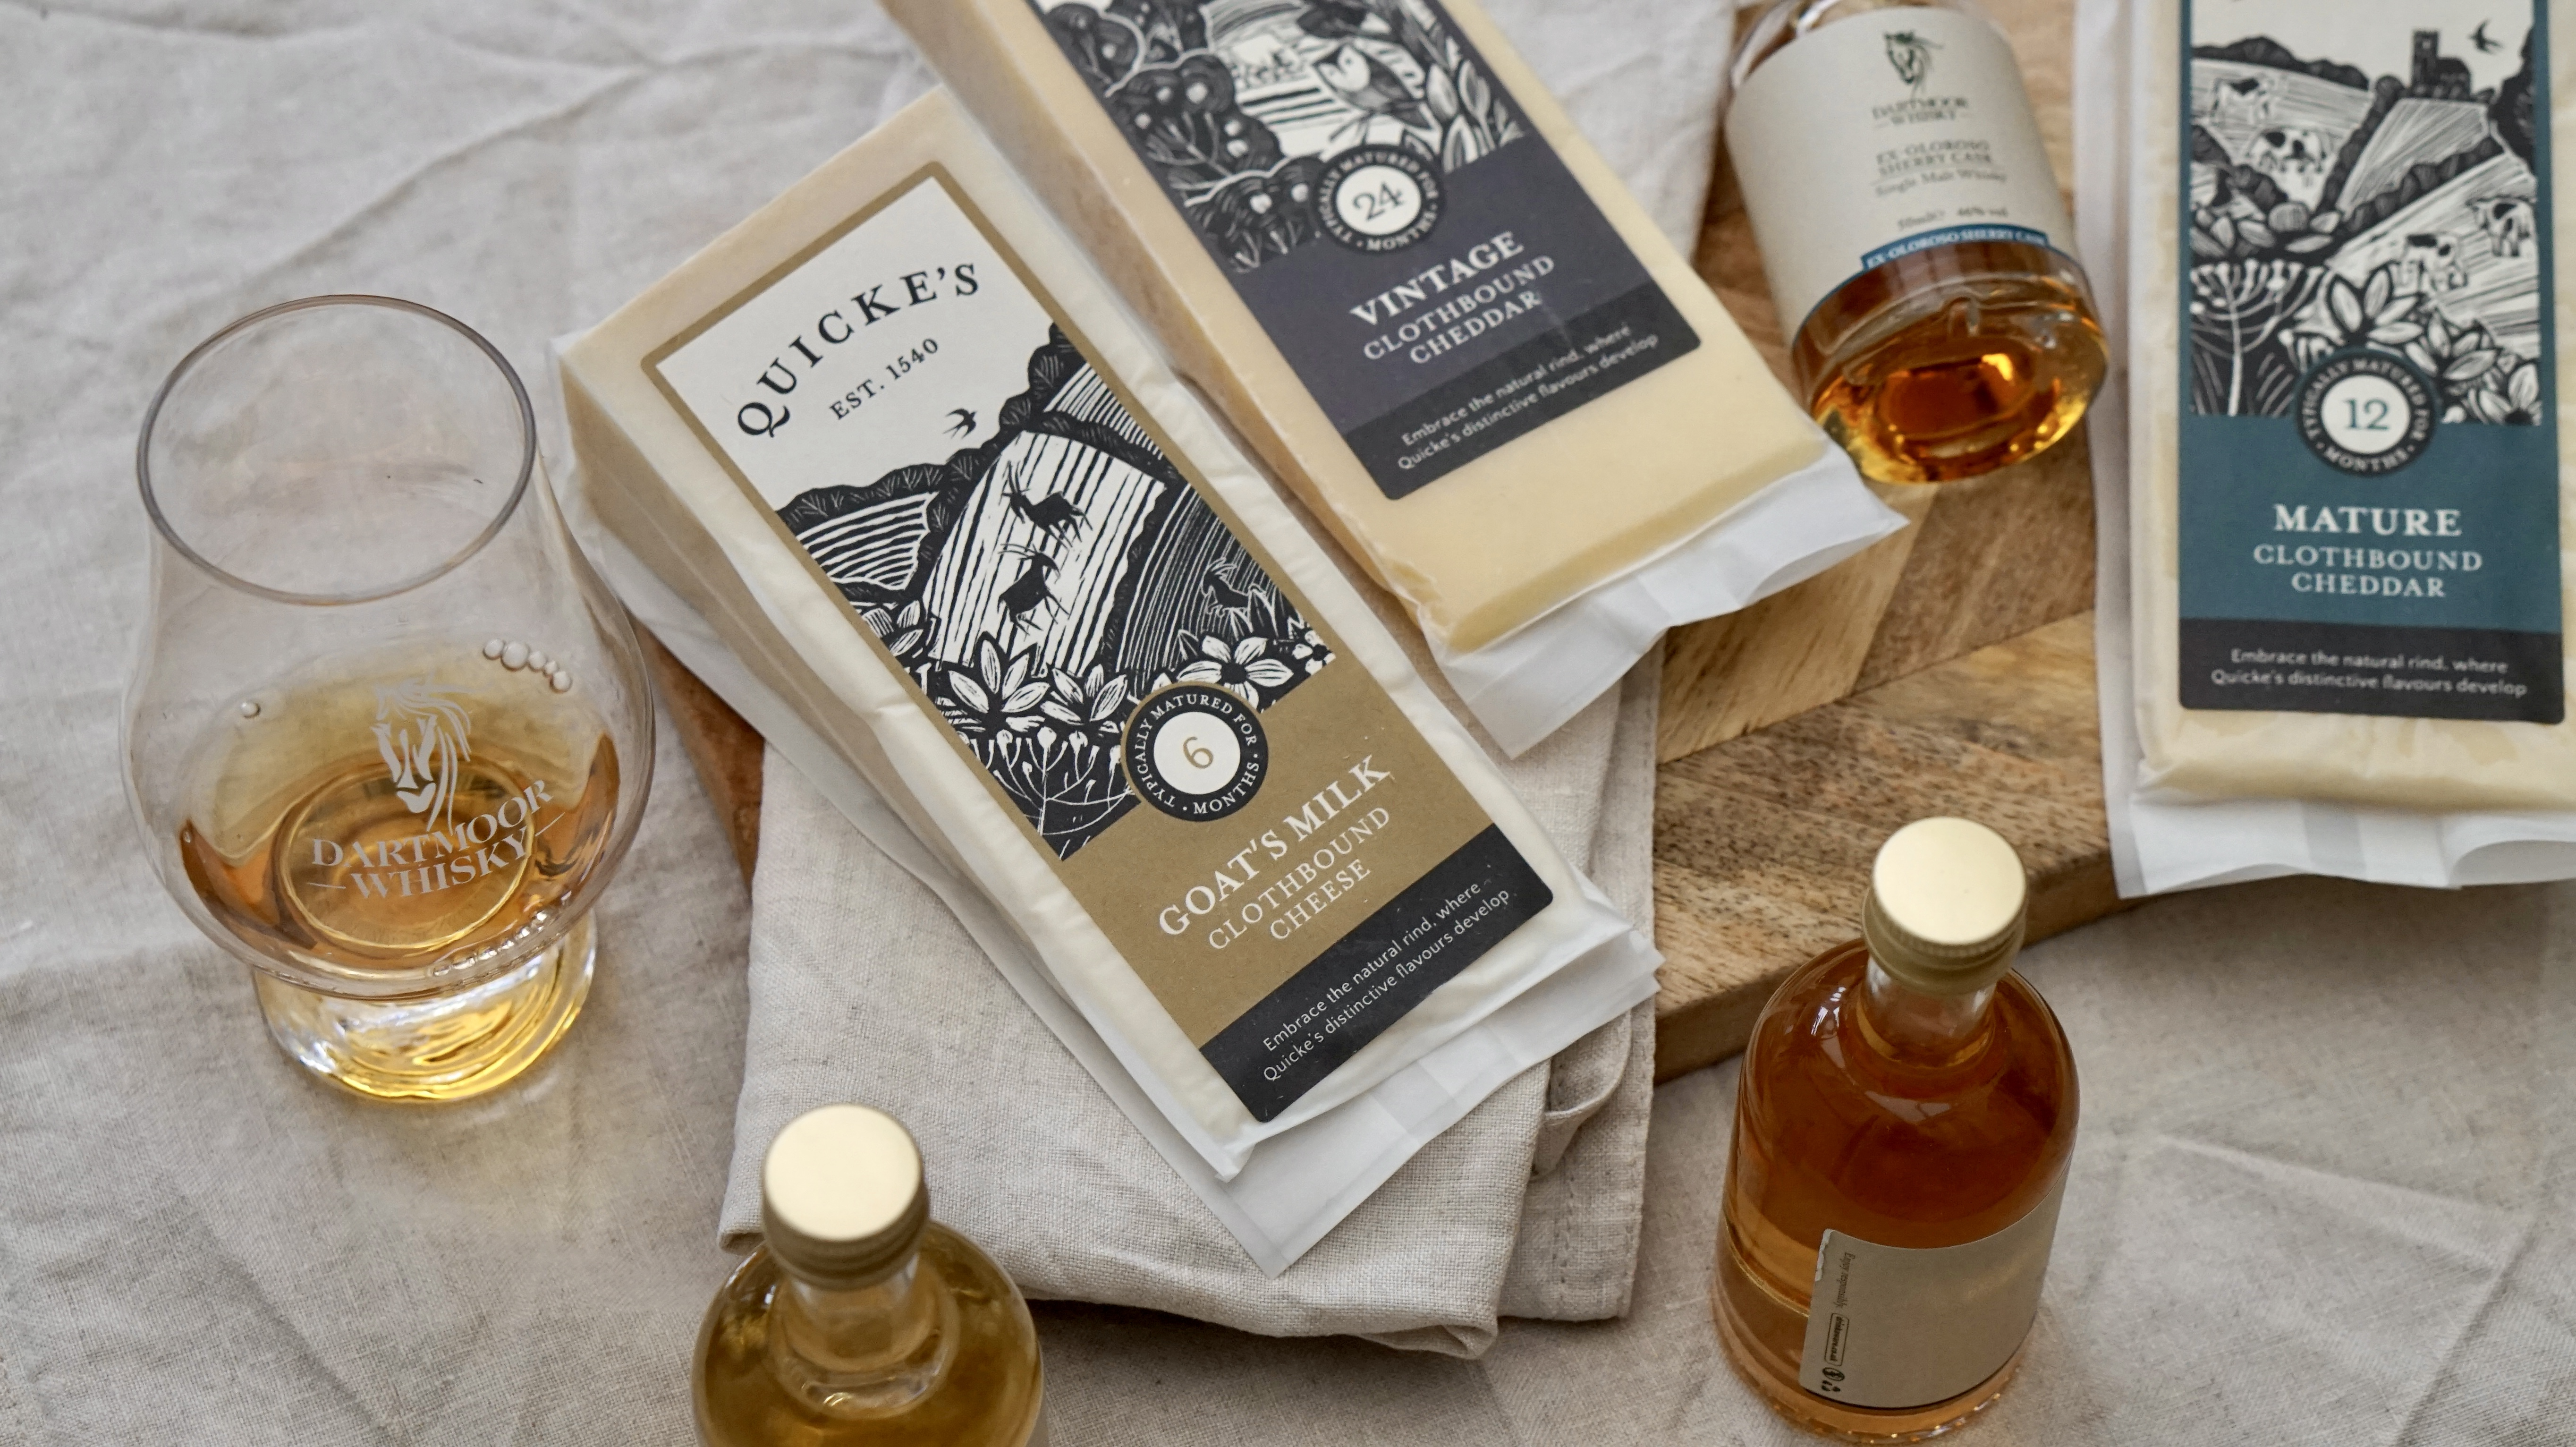 Pairing: Quicke's Clothbound Cheese & Dartmoor Whisky Single Malt